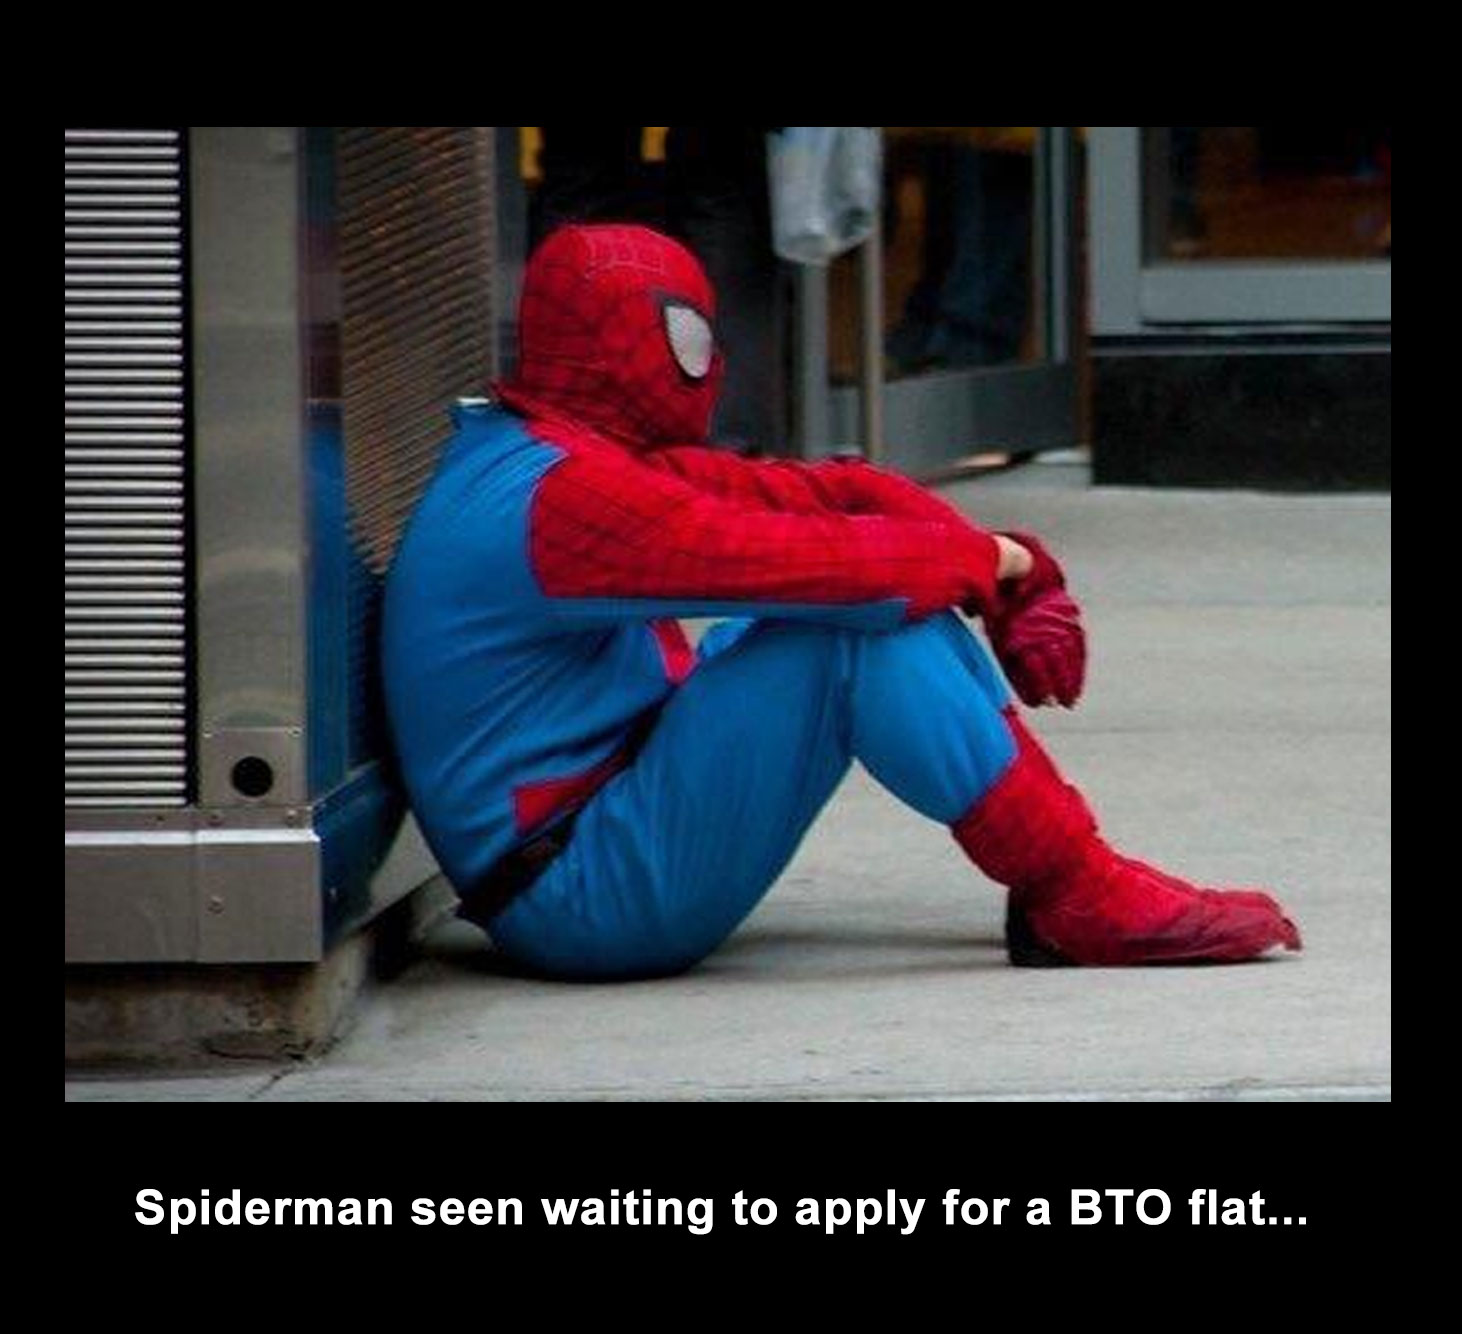 spiderman-homeless.jpg